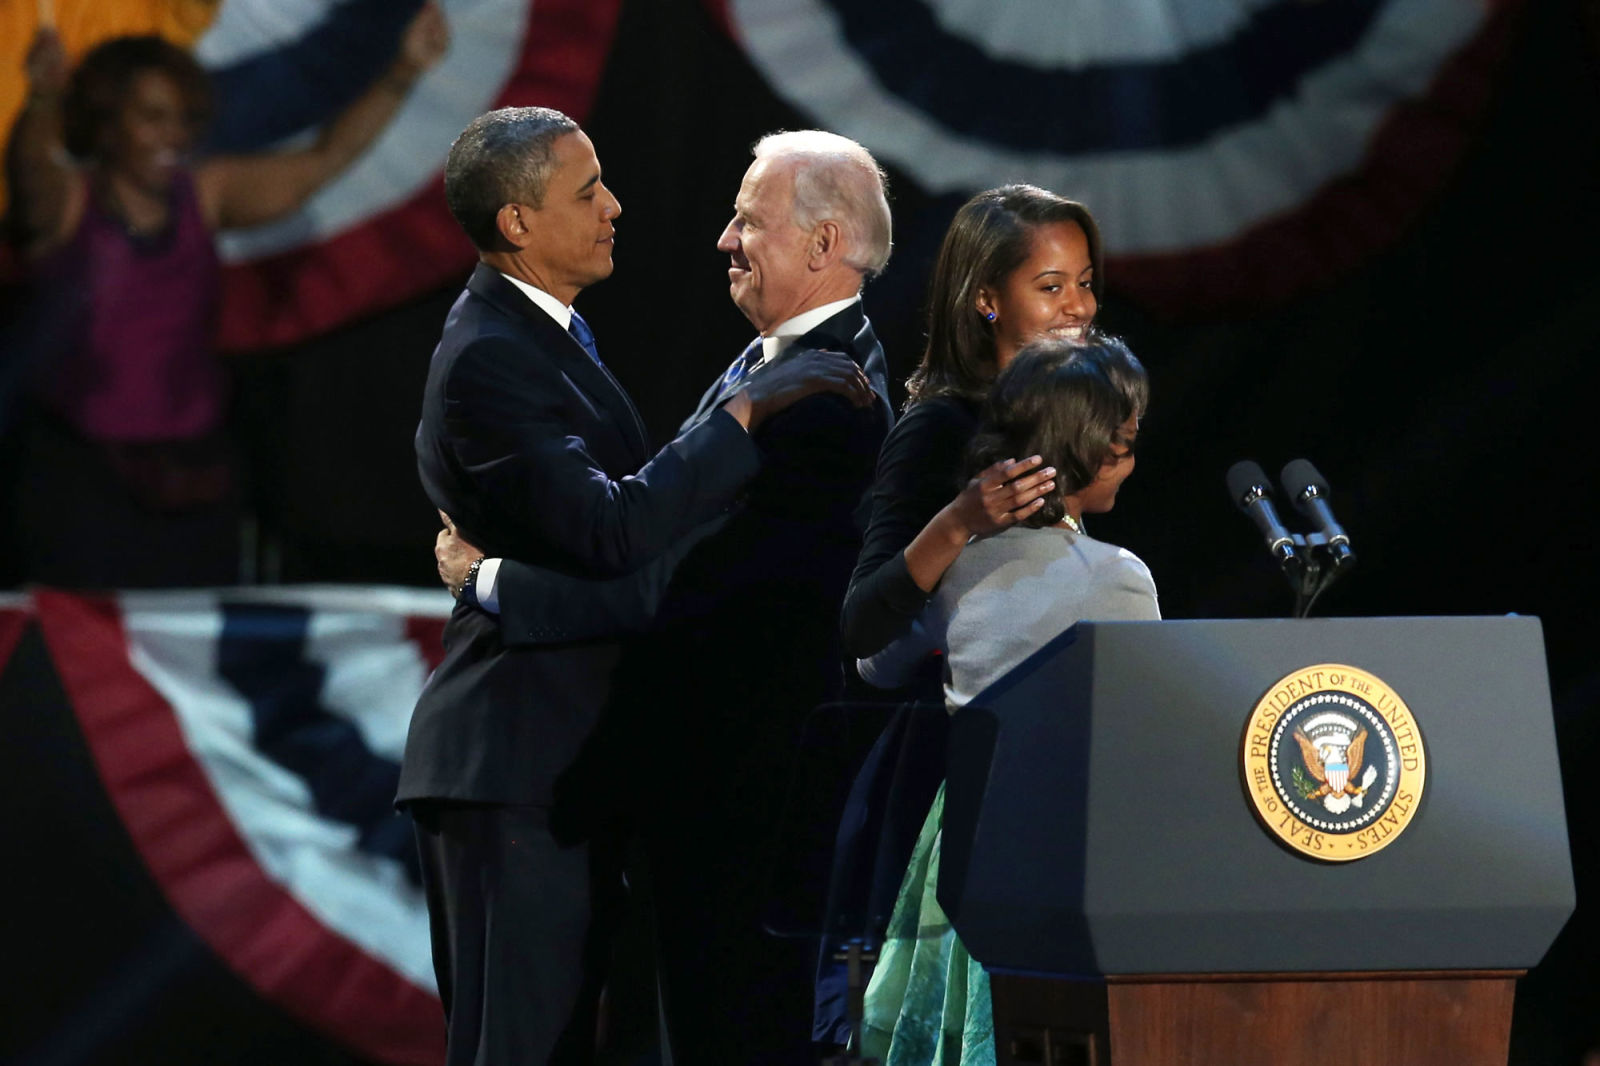 hbz-obama-biden-22-gettyimages-155691511